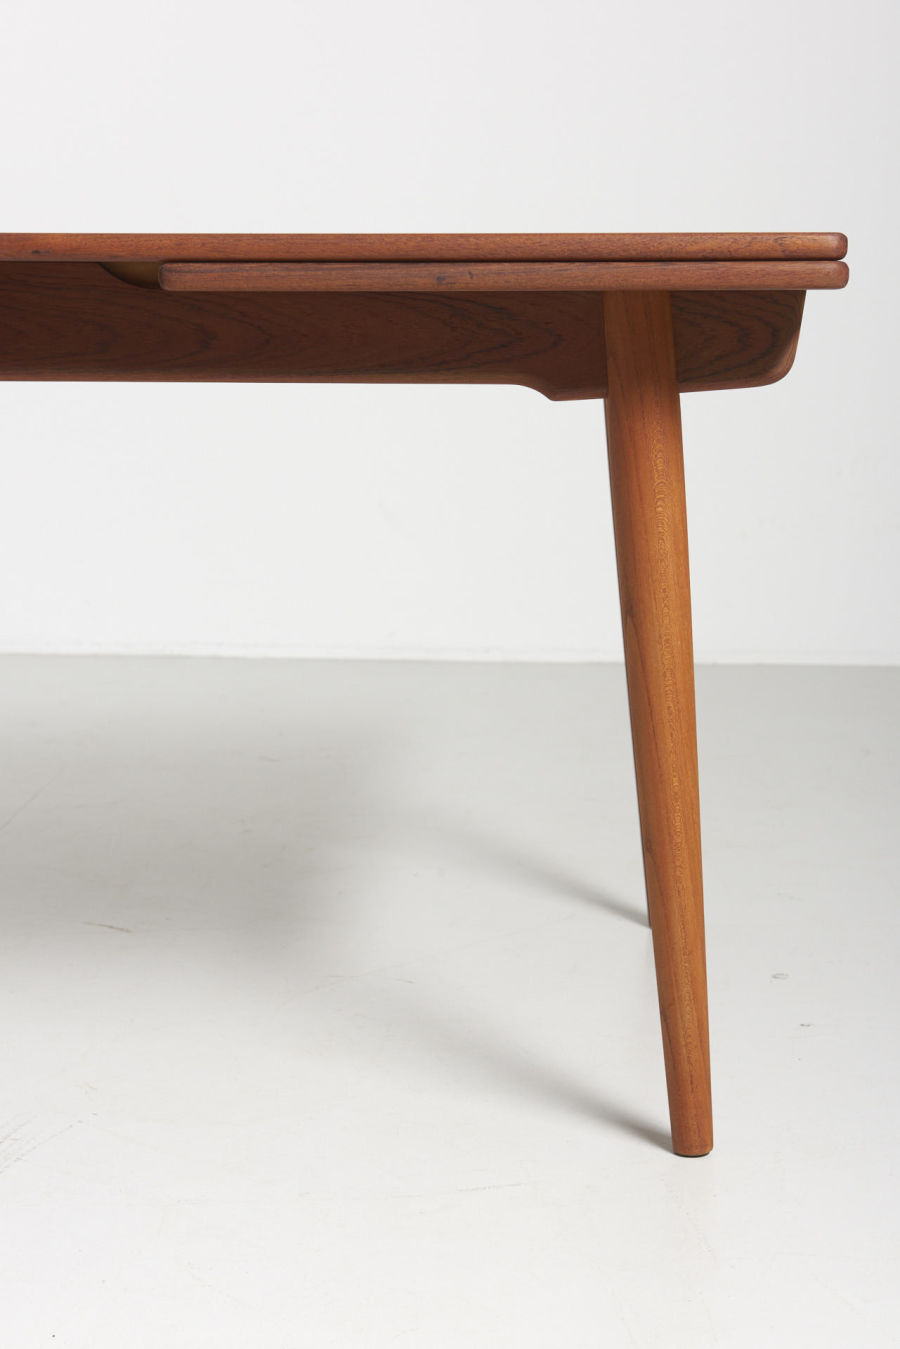 modestfurniture-vintage-1985-hans-wegner-teak-dining-table-andreas-tuck-at-31203